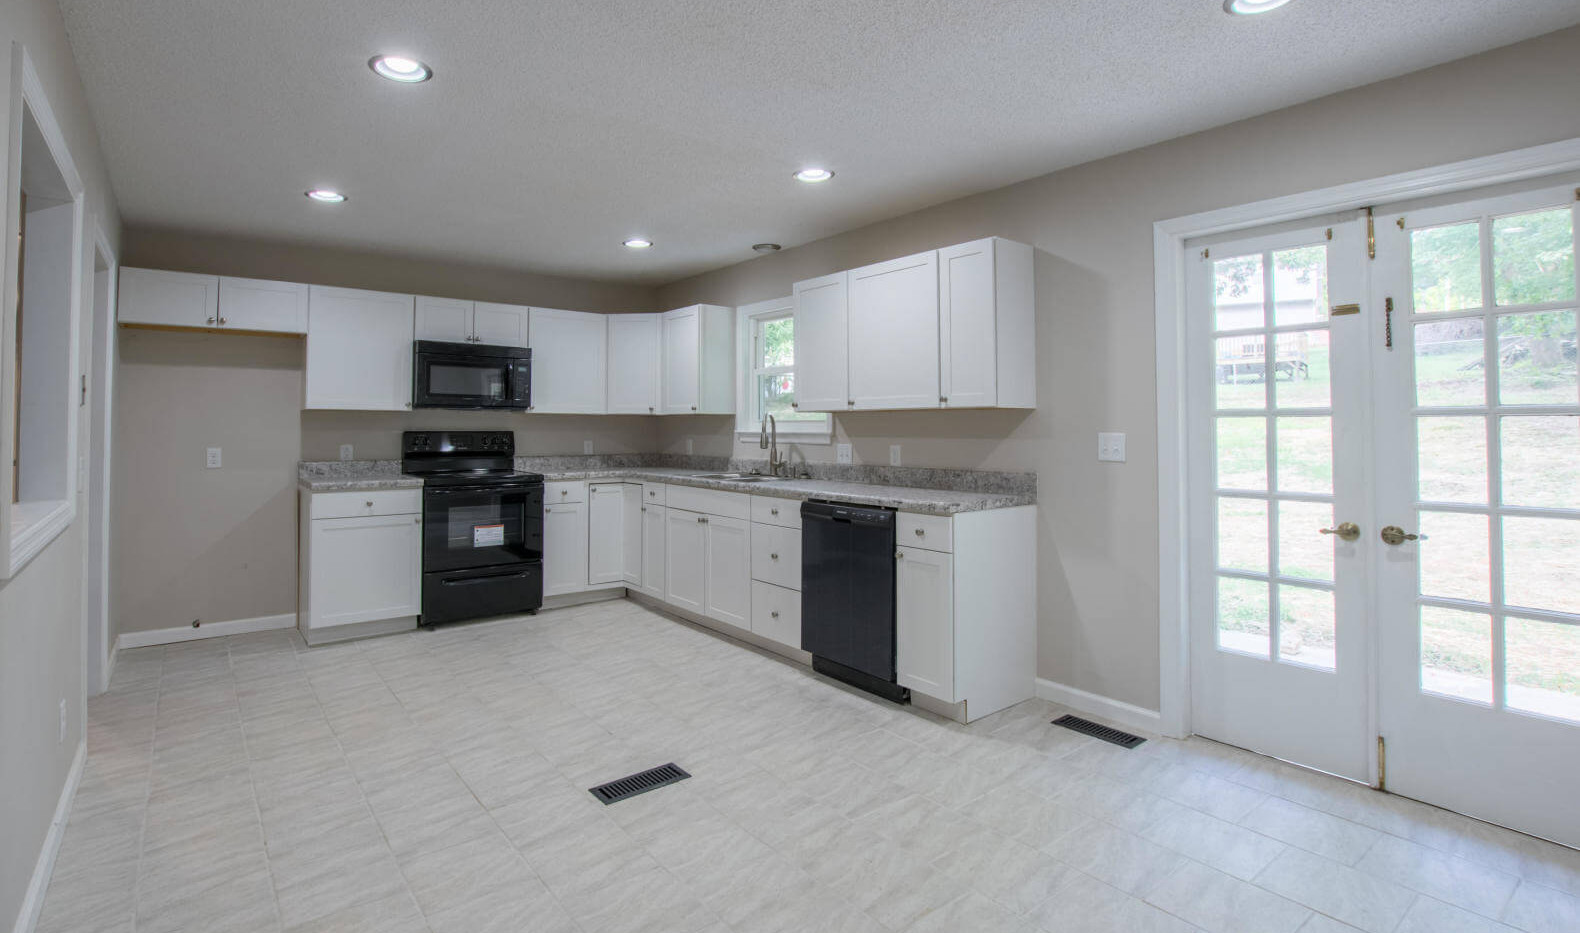 7512 Irongate Dr, Hixon - Kitchen 2.jpg